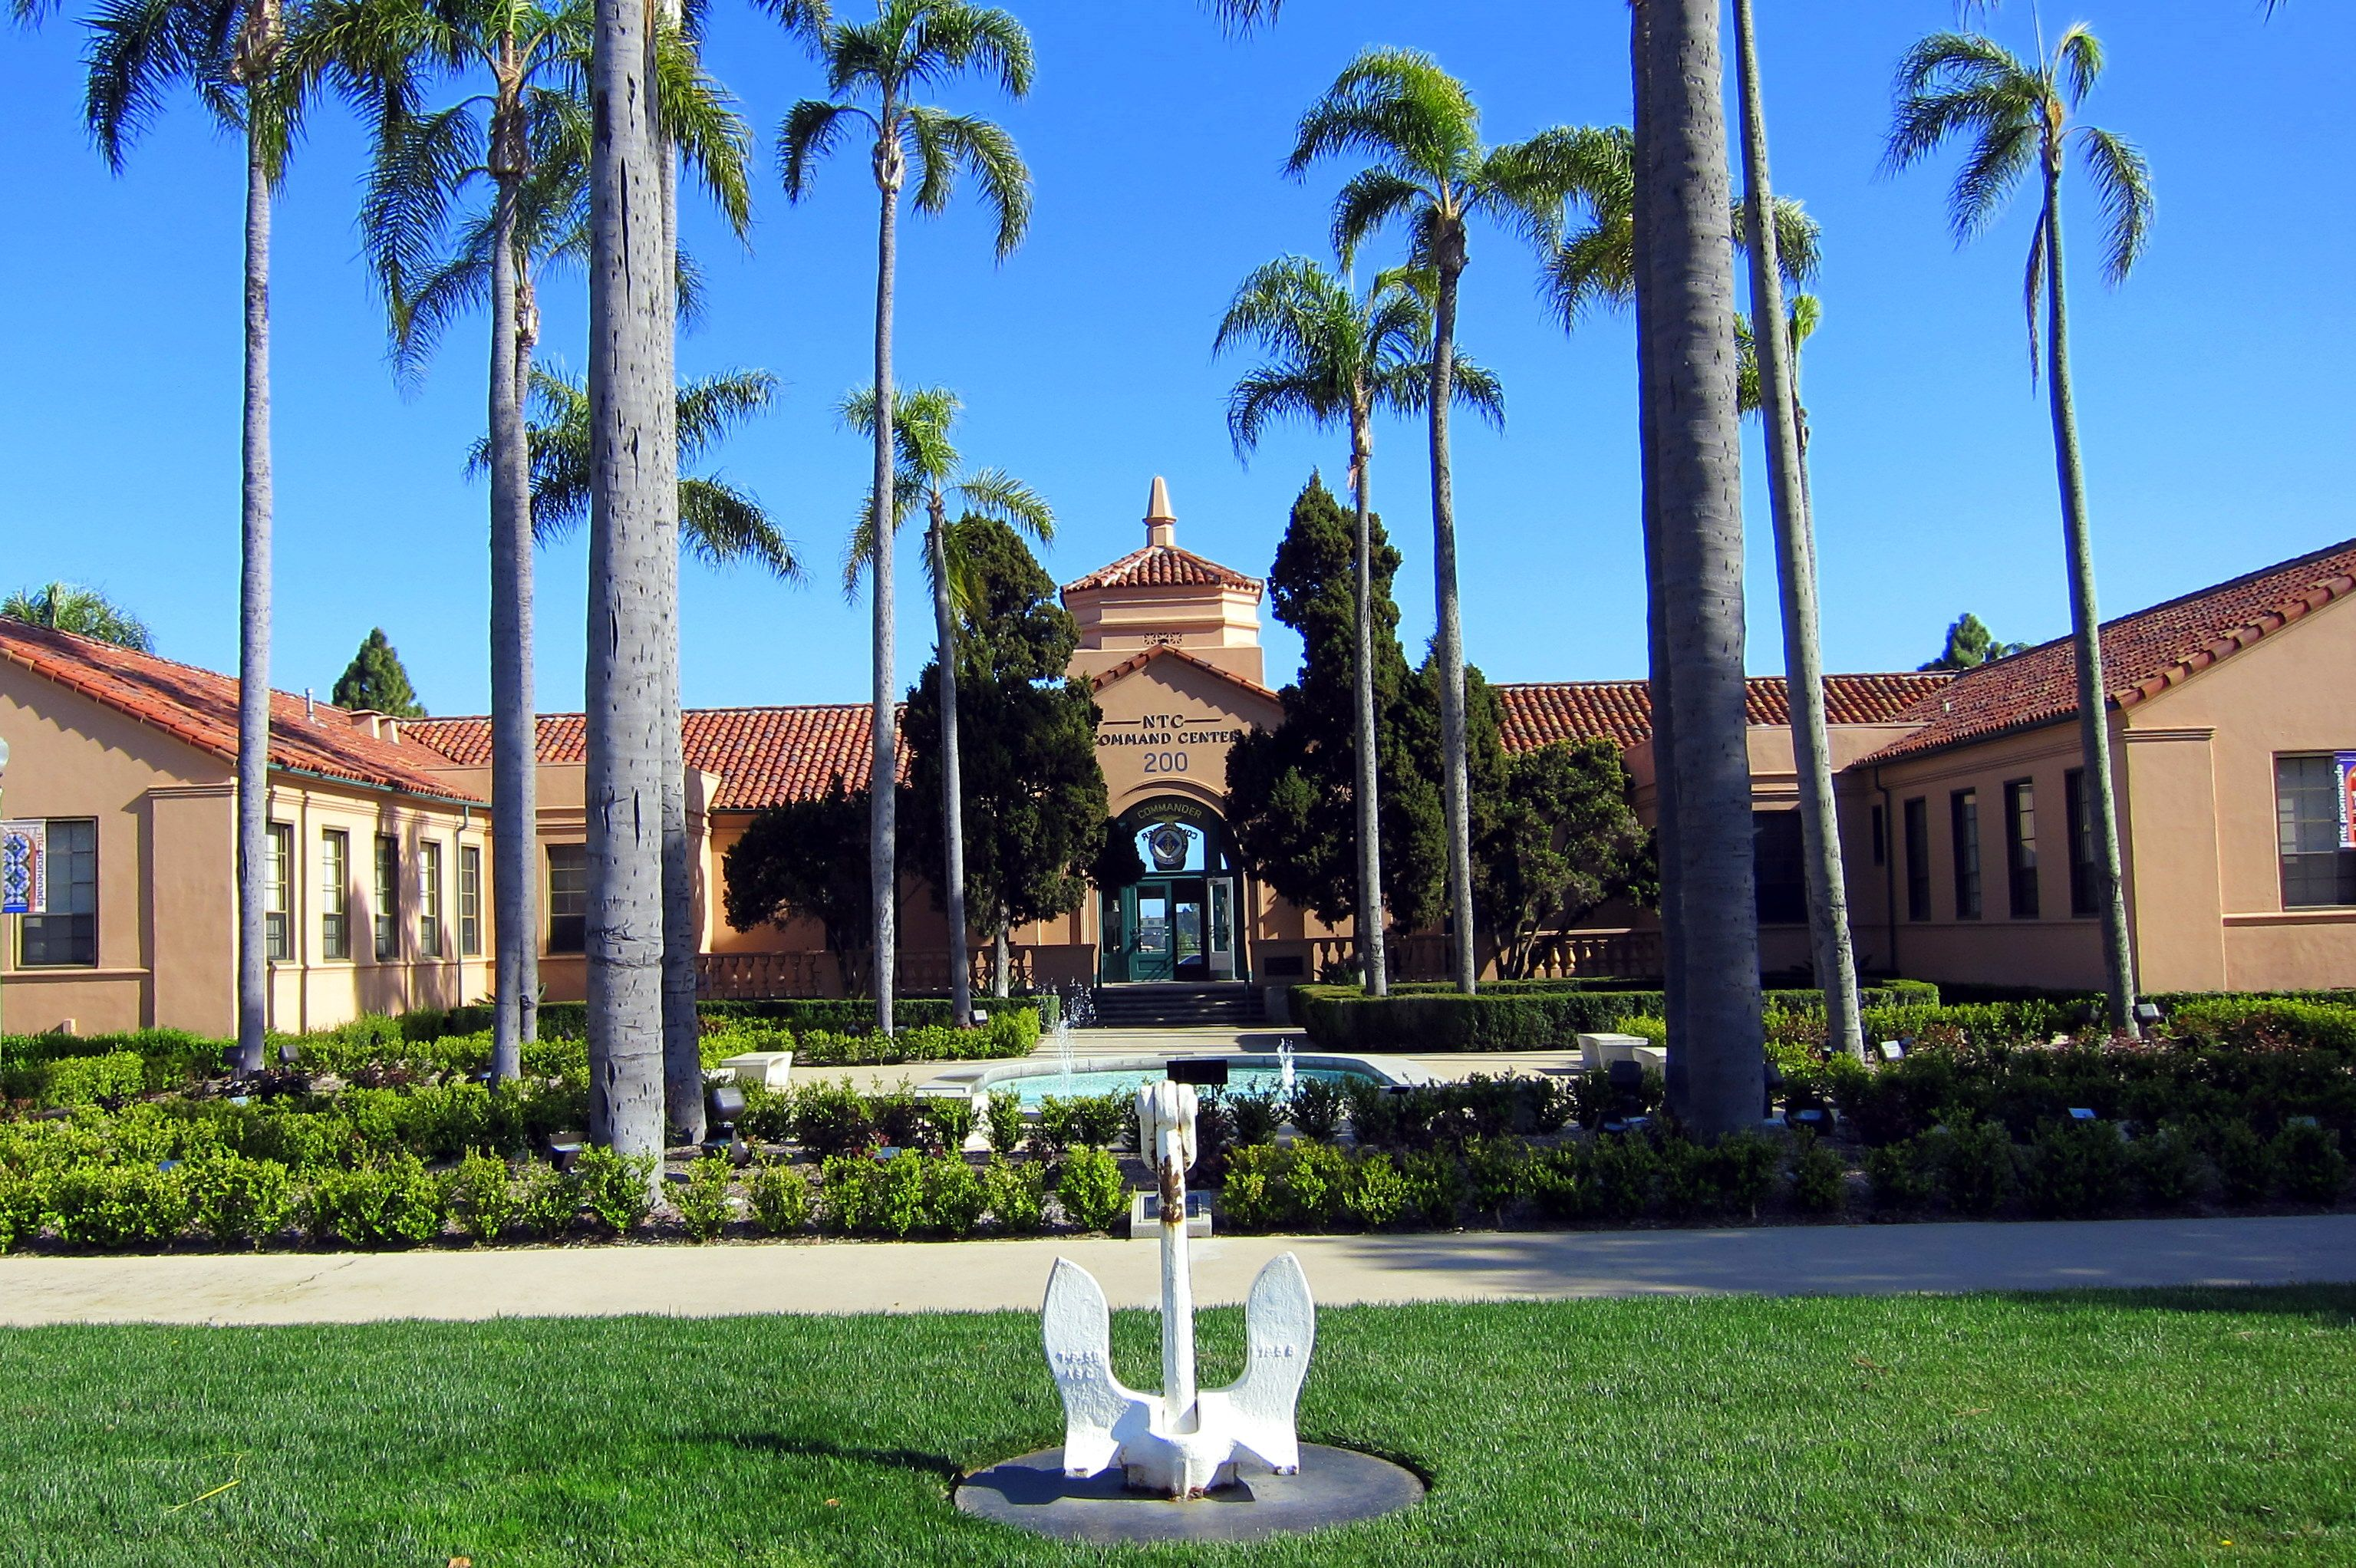 Former naval training center ntc san diego closed by